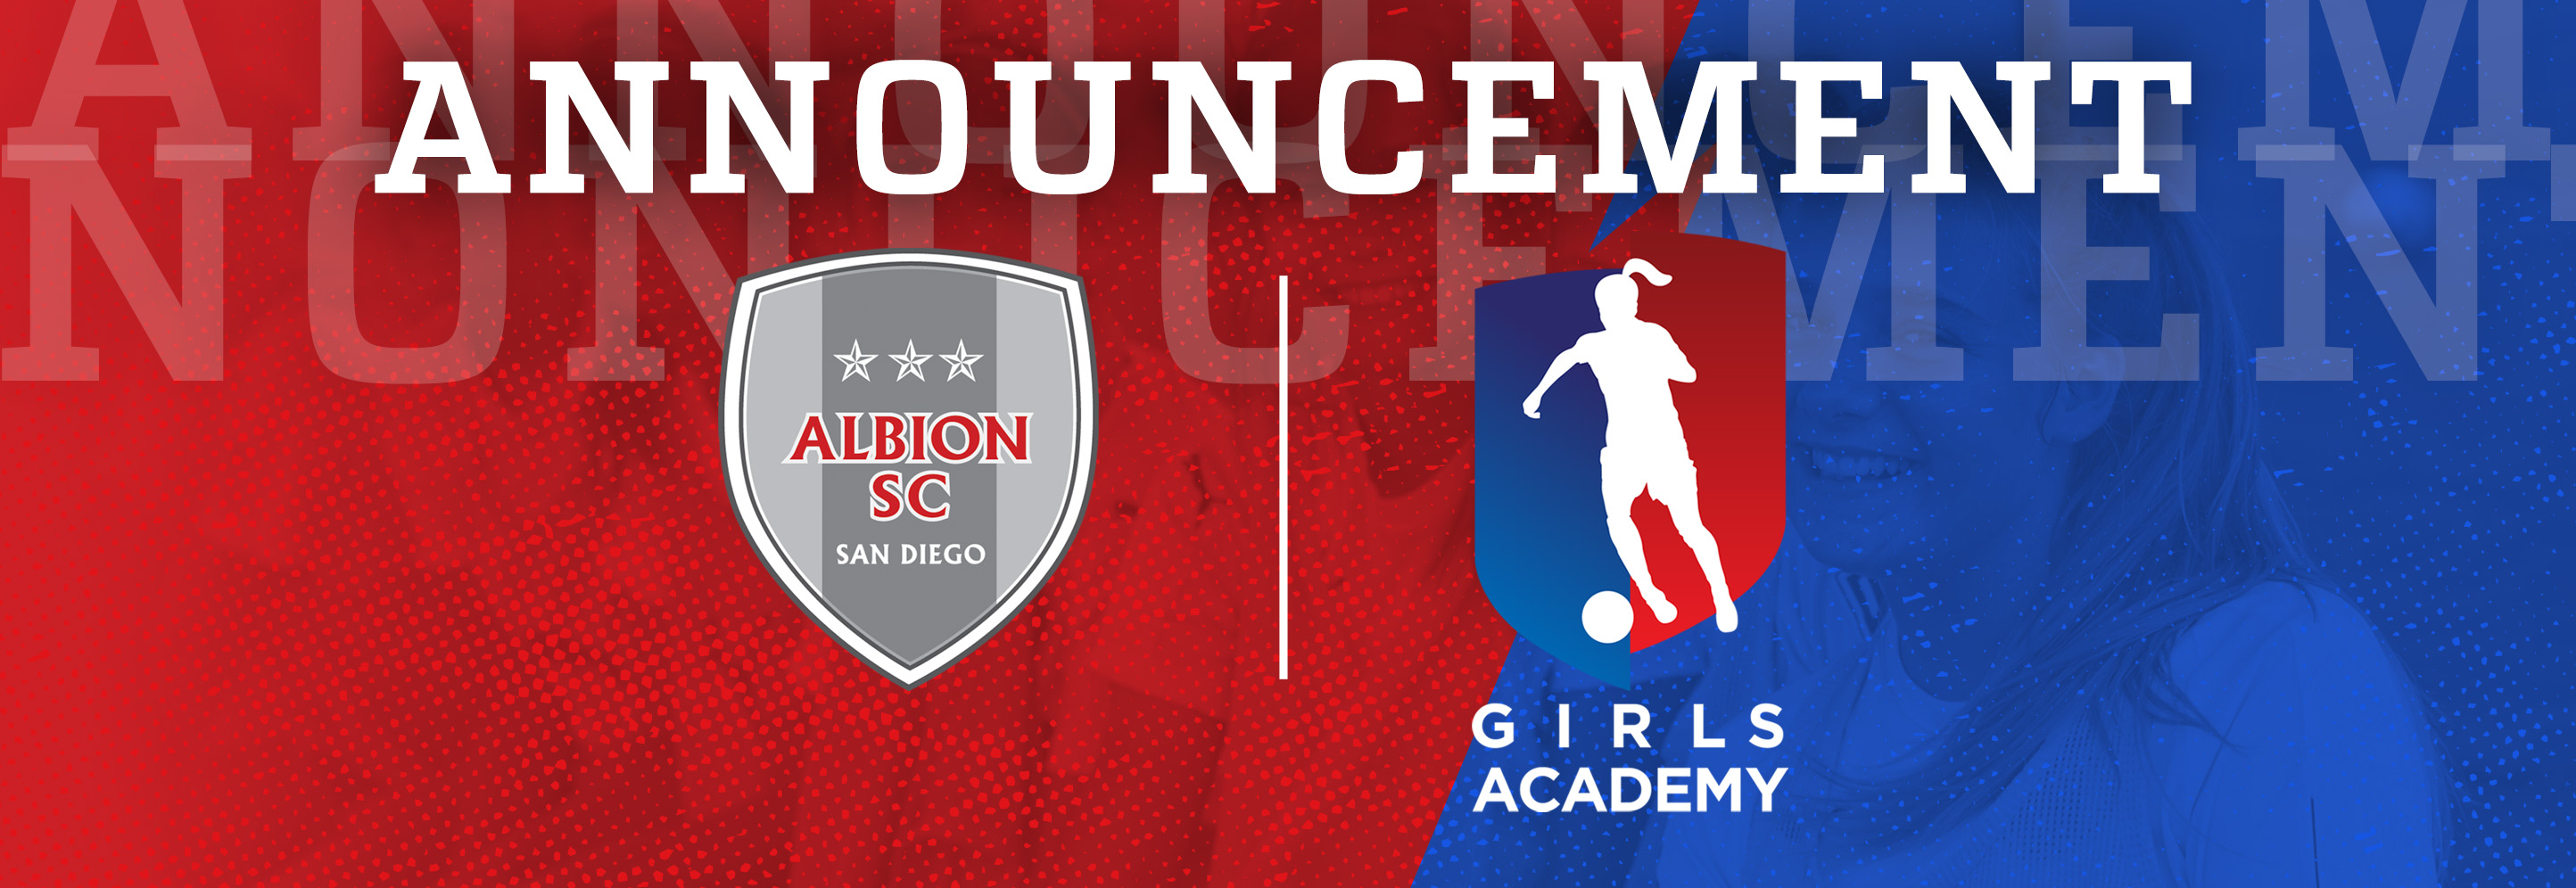 ALBION SC JOINS THE GIRLS ACADEMY (GA)